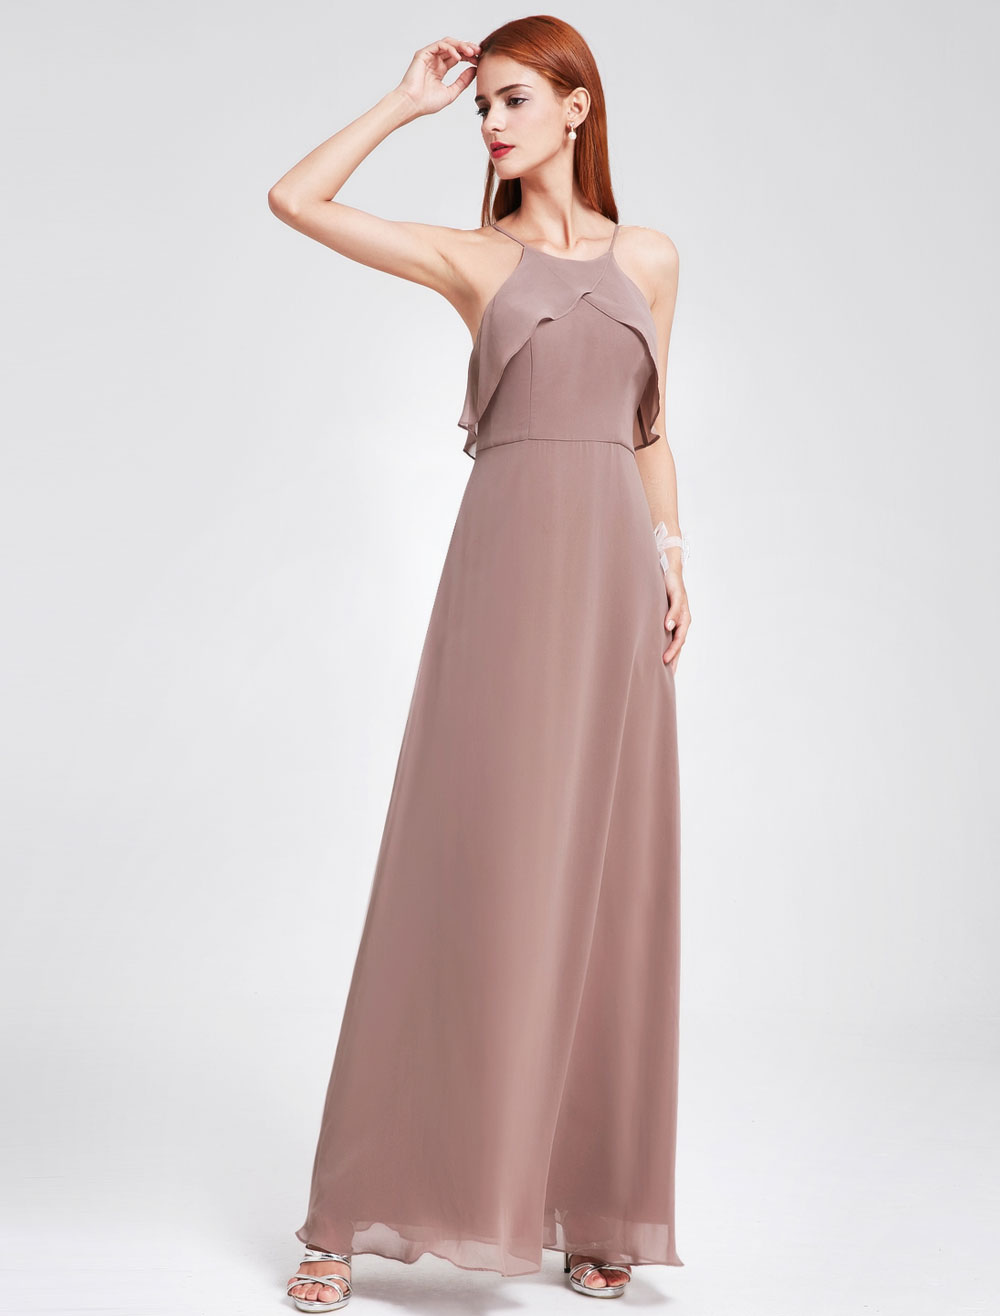 Buy Chiffon Bridesmaid Dresses Halter Sleeveless Backless Prom Dress Ruffles Taupe A Line Floor Length Party Dresses for $105.59 in Milanoo store